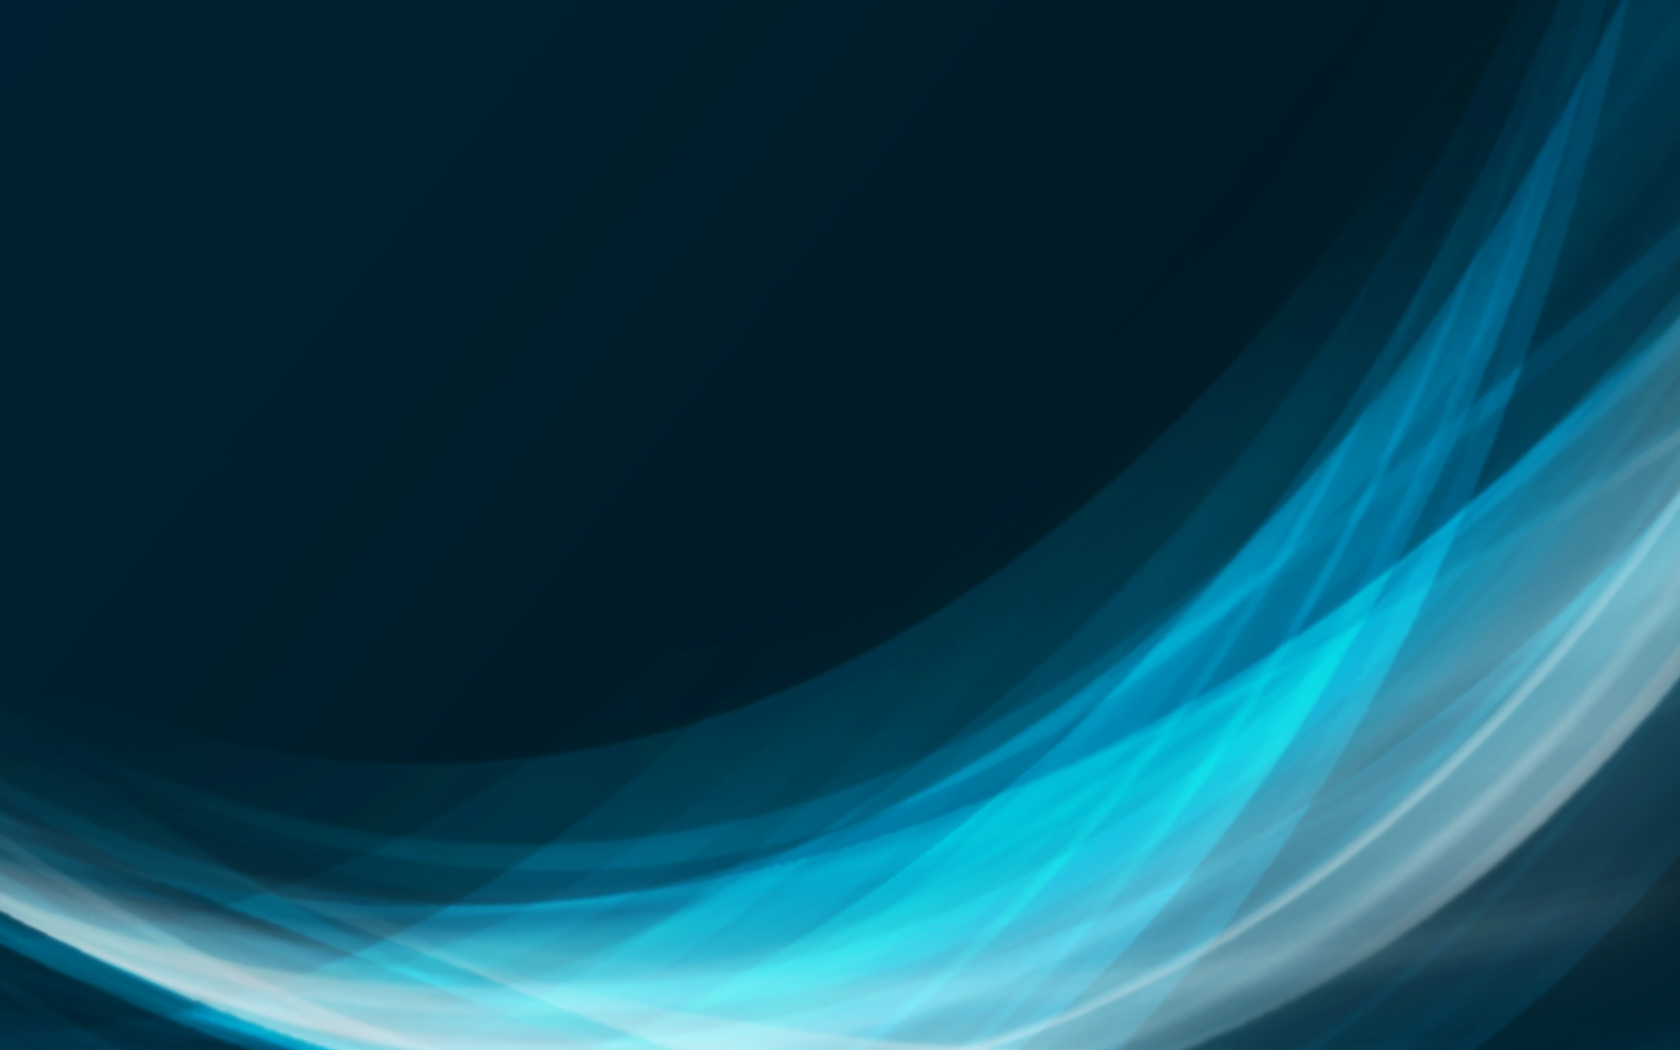 turquoise abstract computer wallpaper - photo #3